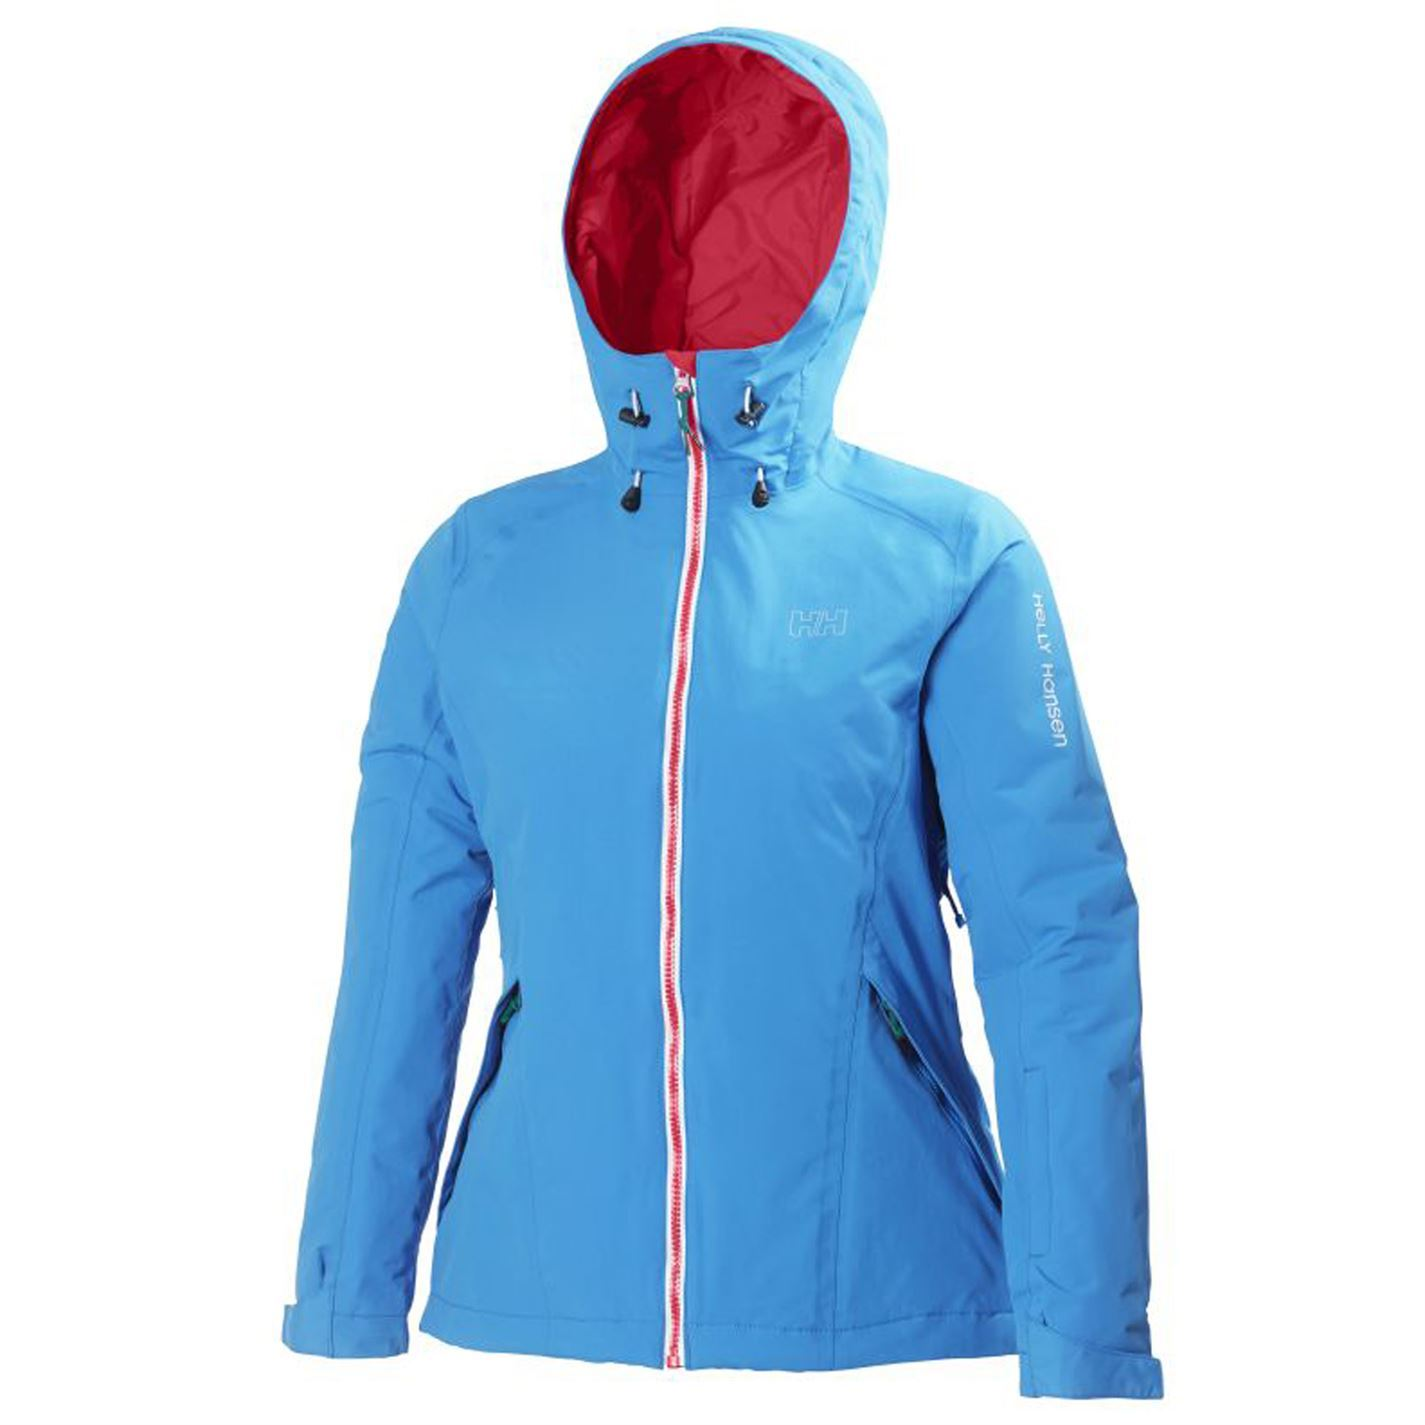 helly hansen womens sundance ladies ski jacket coat top outwear winter snowboard ebay. Black Bedroom Furniture Sets. Home Design Ideas